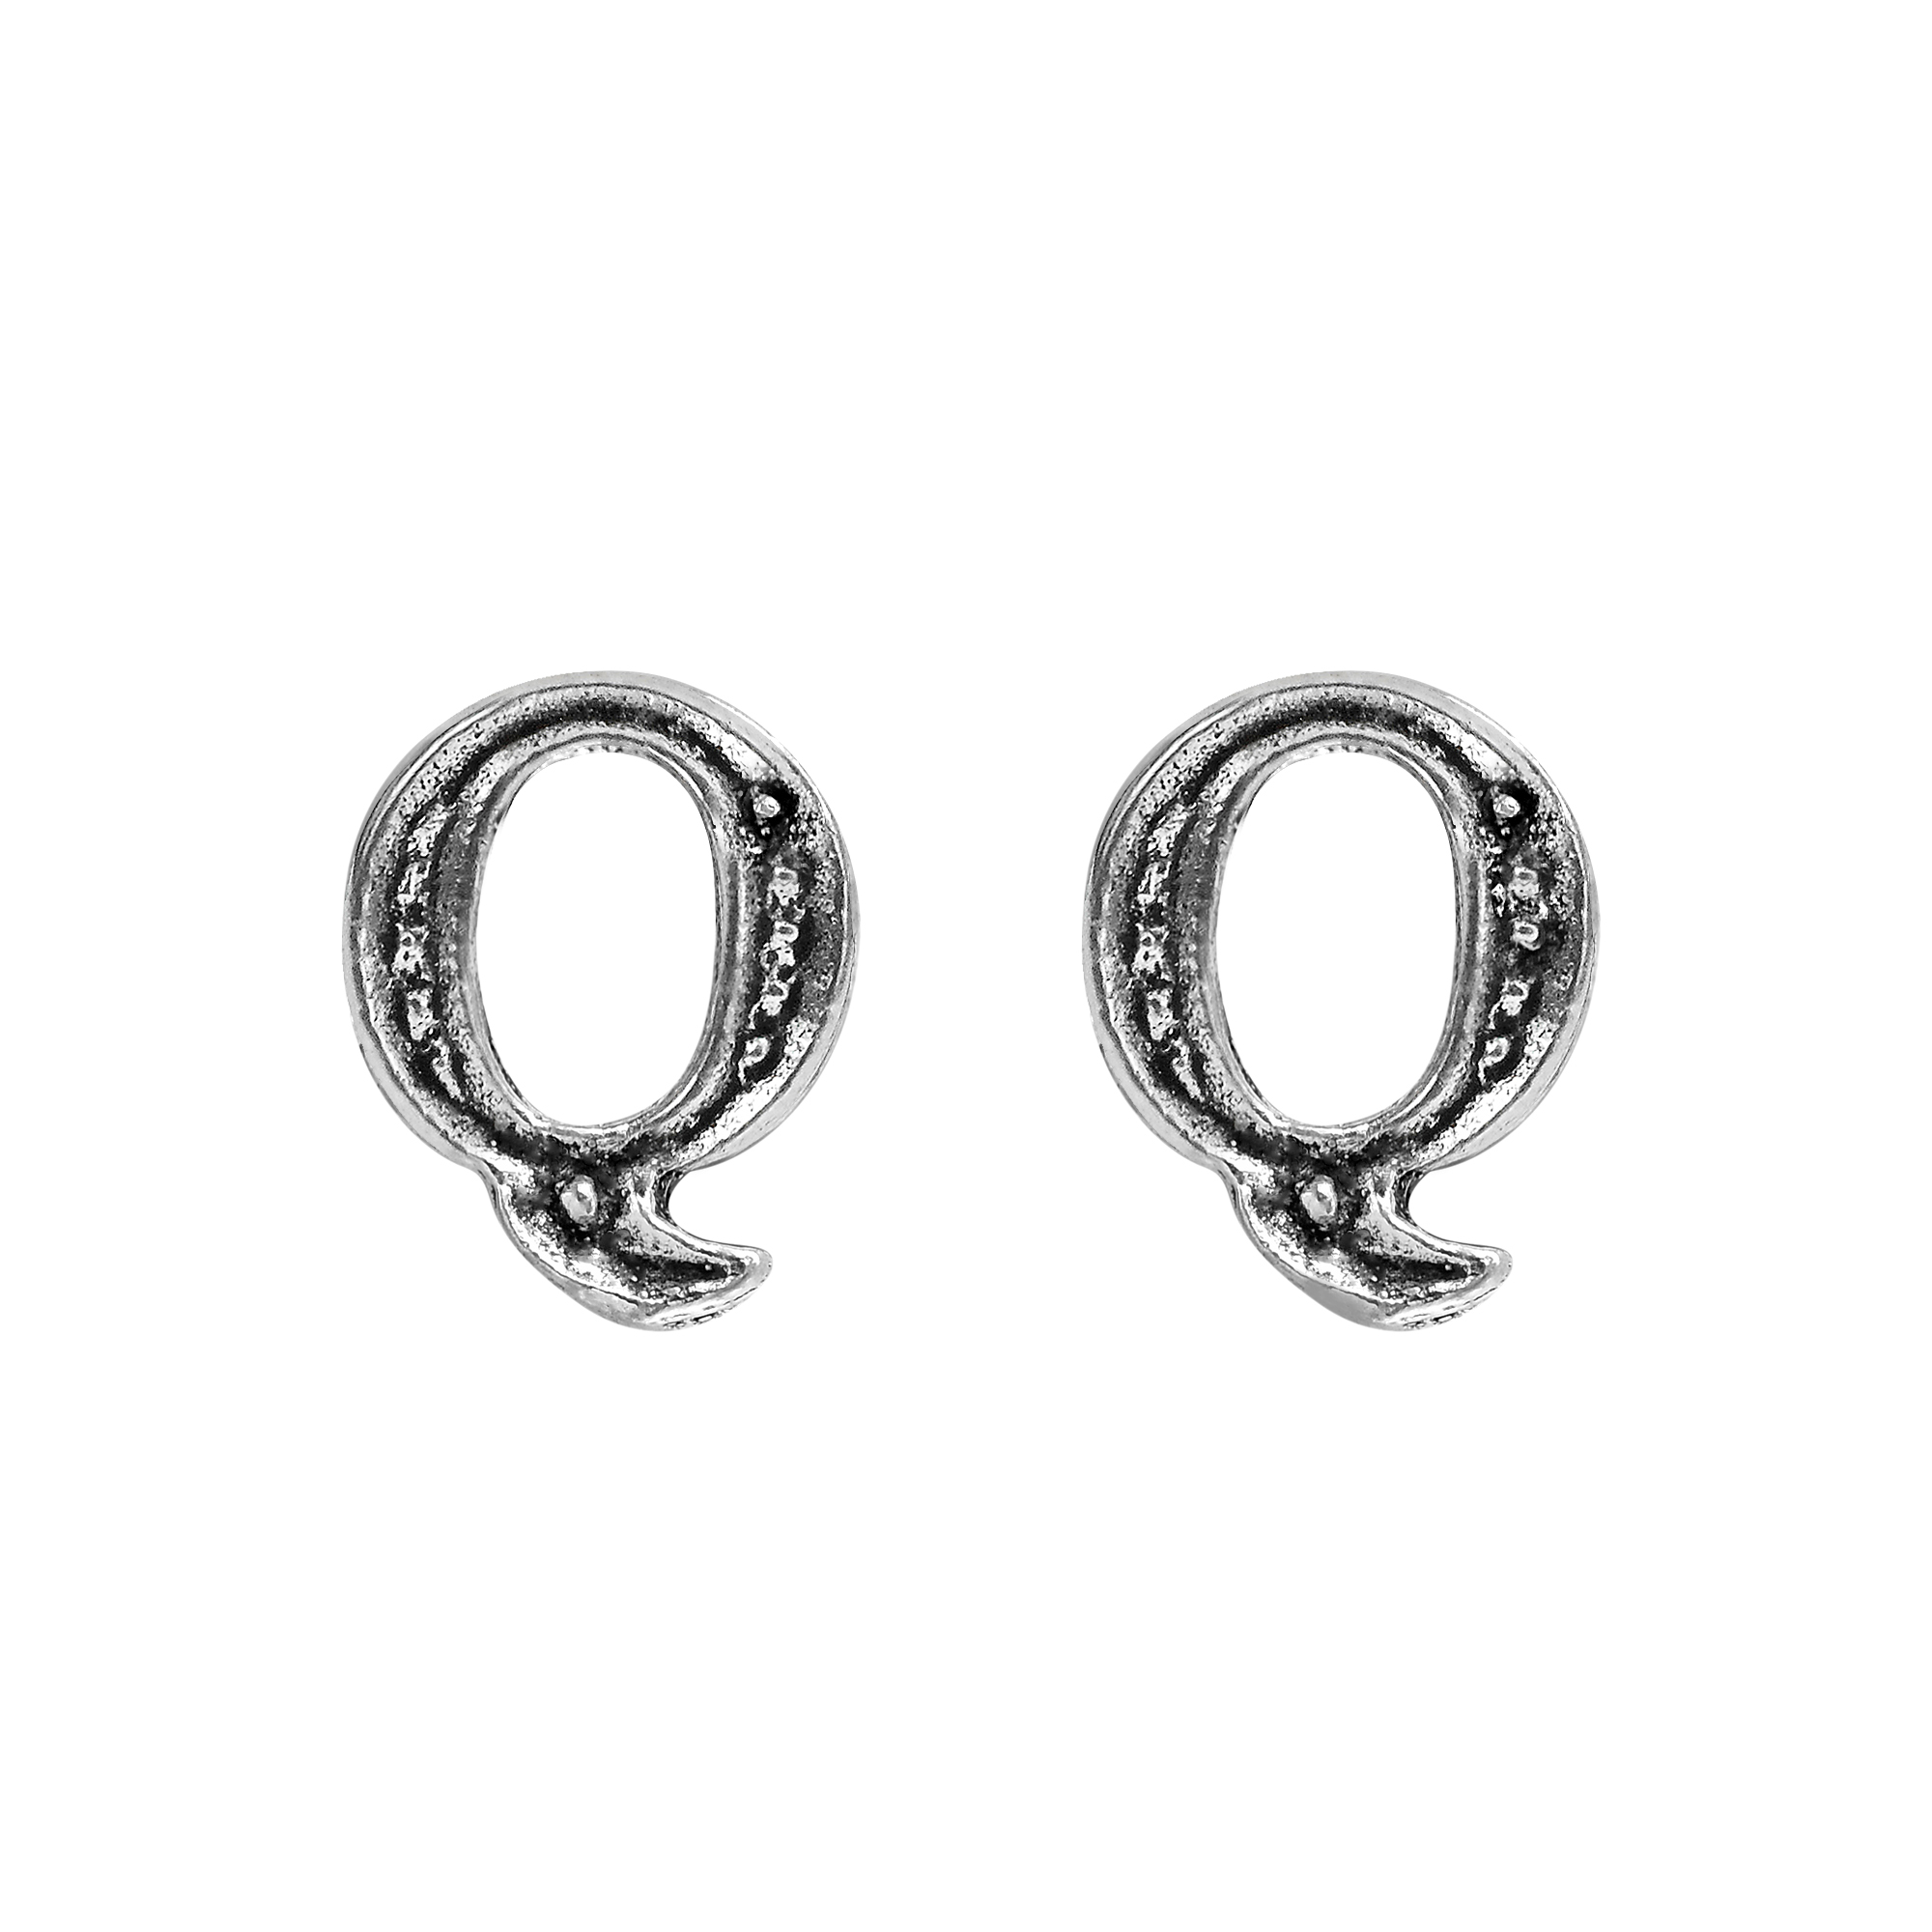 handmade cool n alphabet are in yet aeravida details letter feature of pe a simple the these this silver stylish stud earrings available sterling every pair products plain